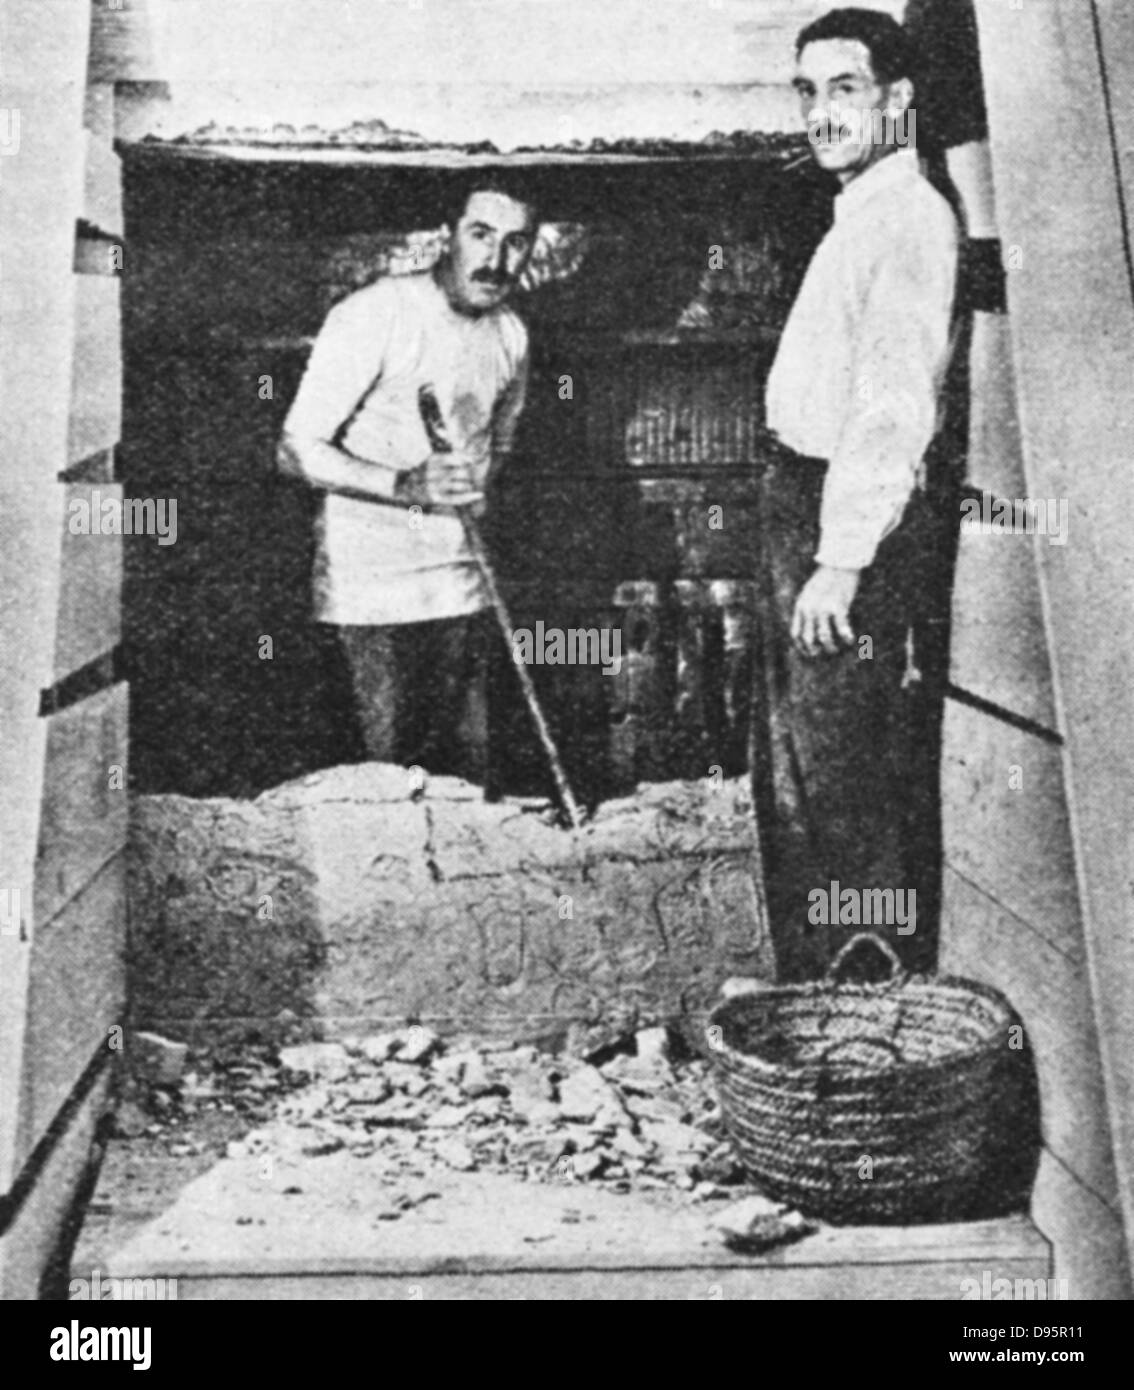 Howard Carter (left) reached the entrance to Tut'ankhamun's tomb at Luxor 1922-3 - Stock Image